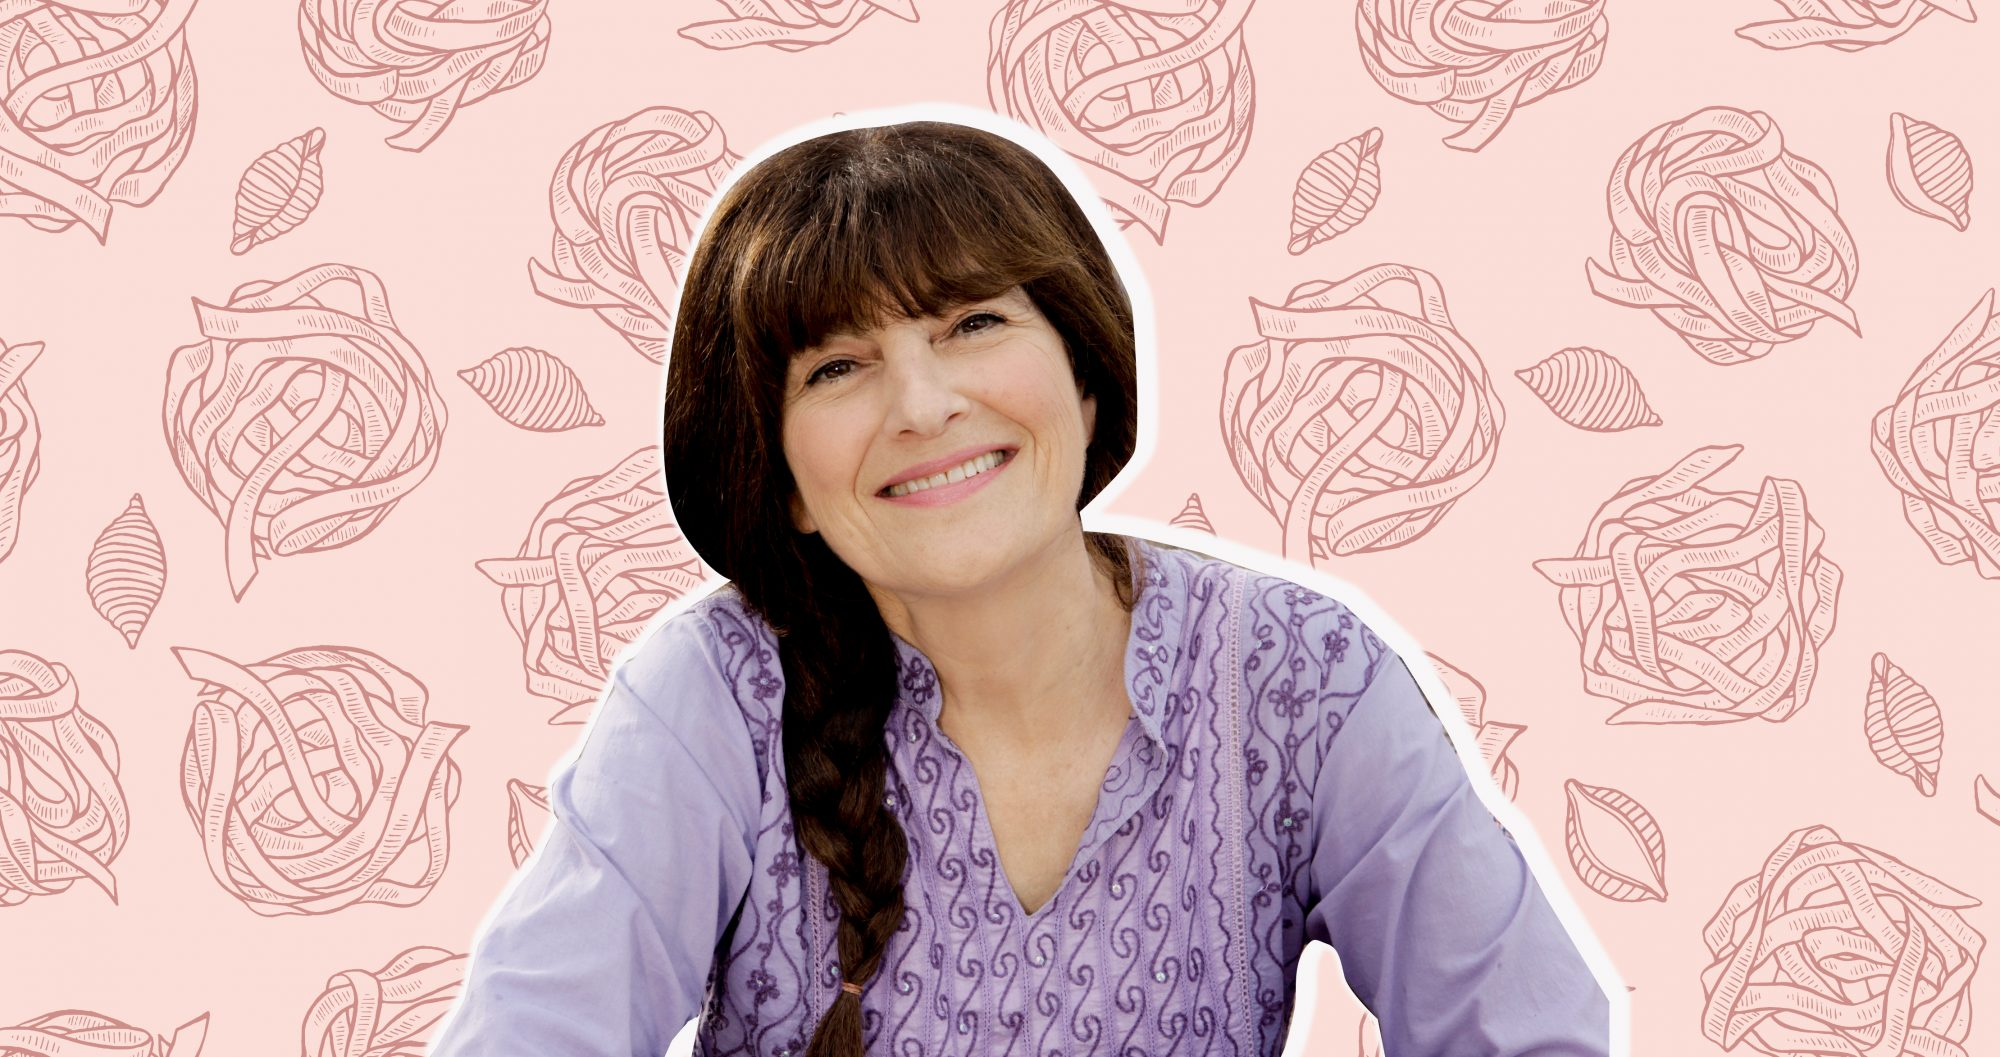 Ruth Reichl Wants You to Love Your Small Kitchen as Much As She Loves Hers